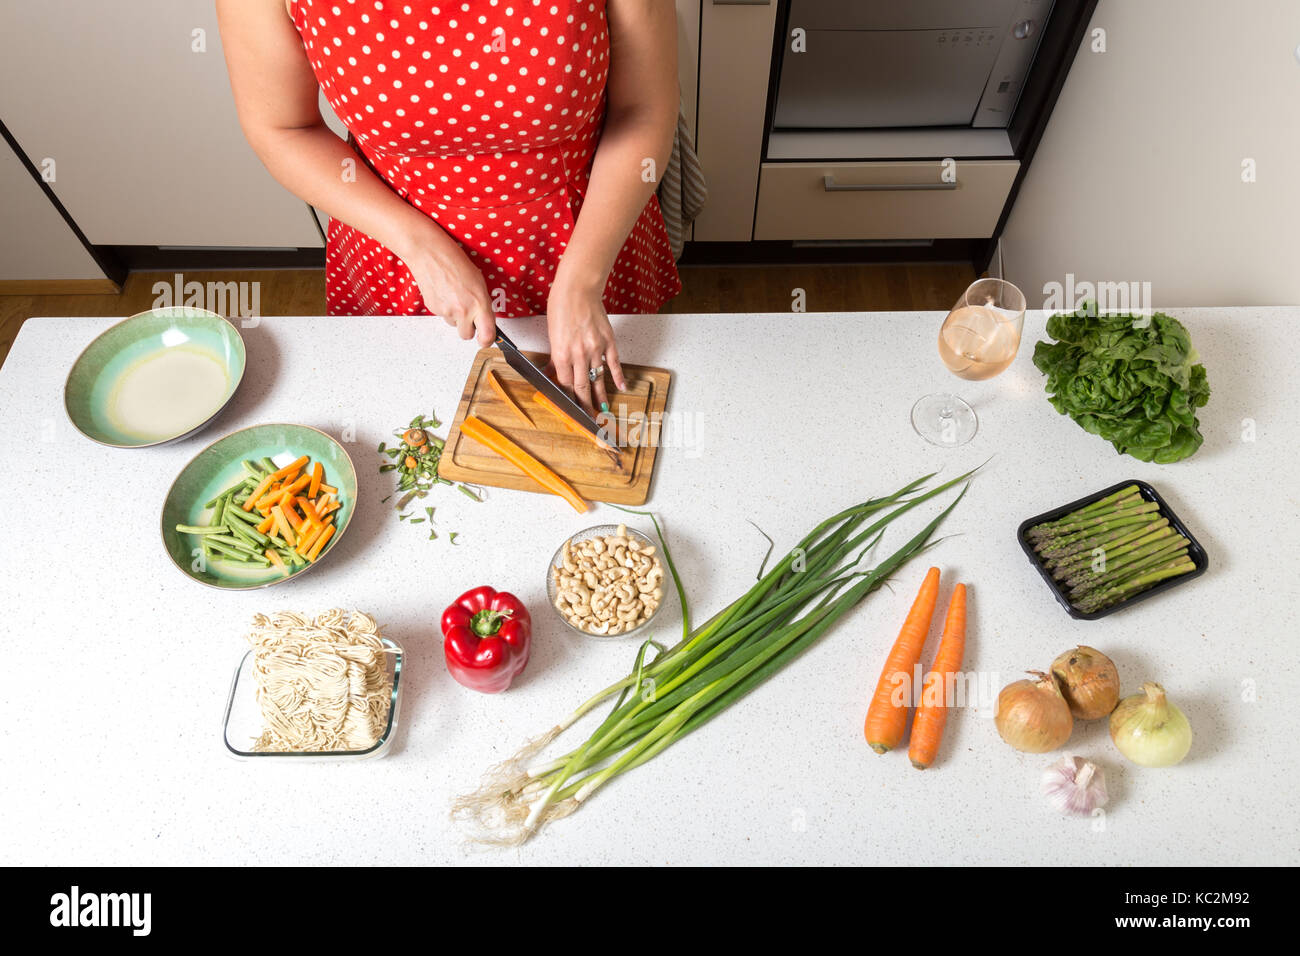 Girl cutting carrots and preparing food - Stock Image